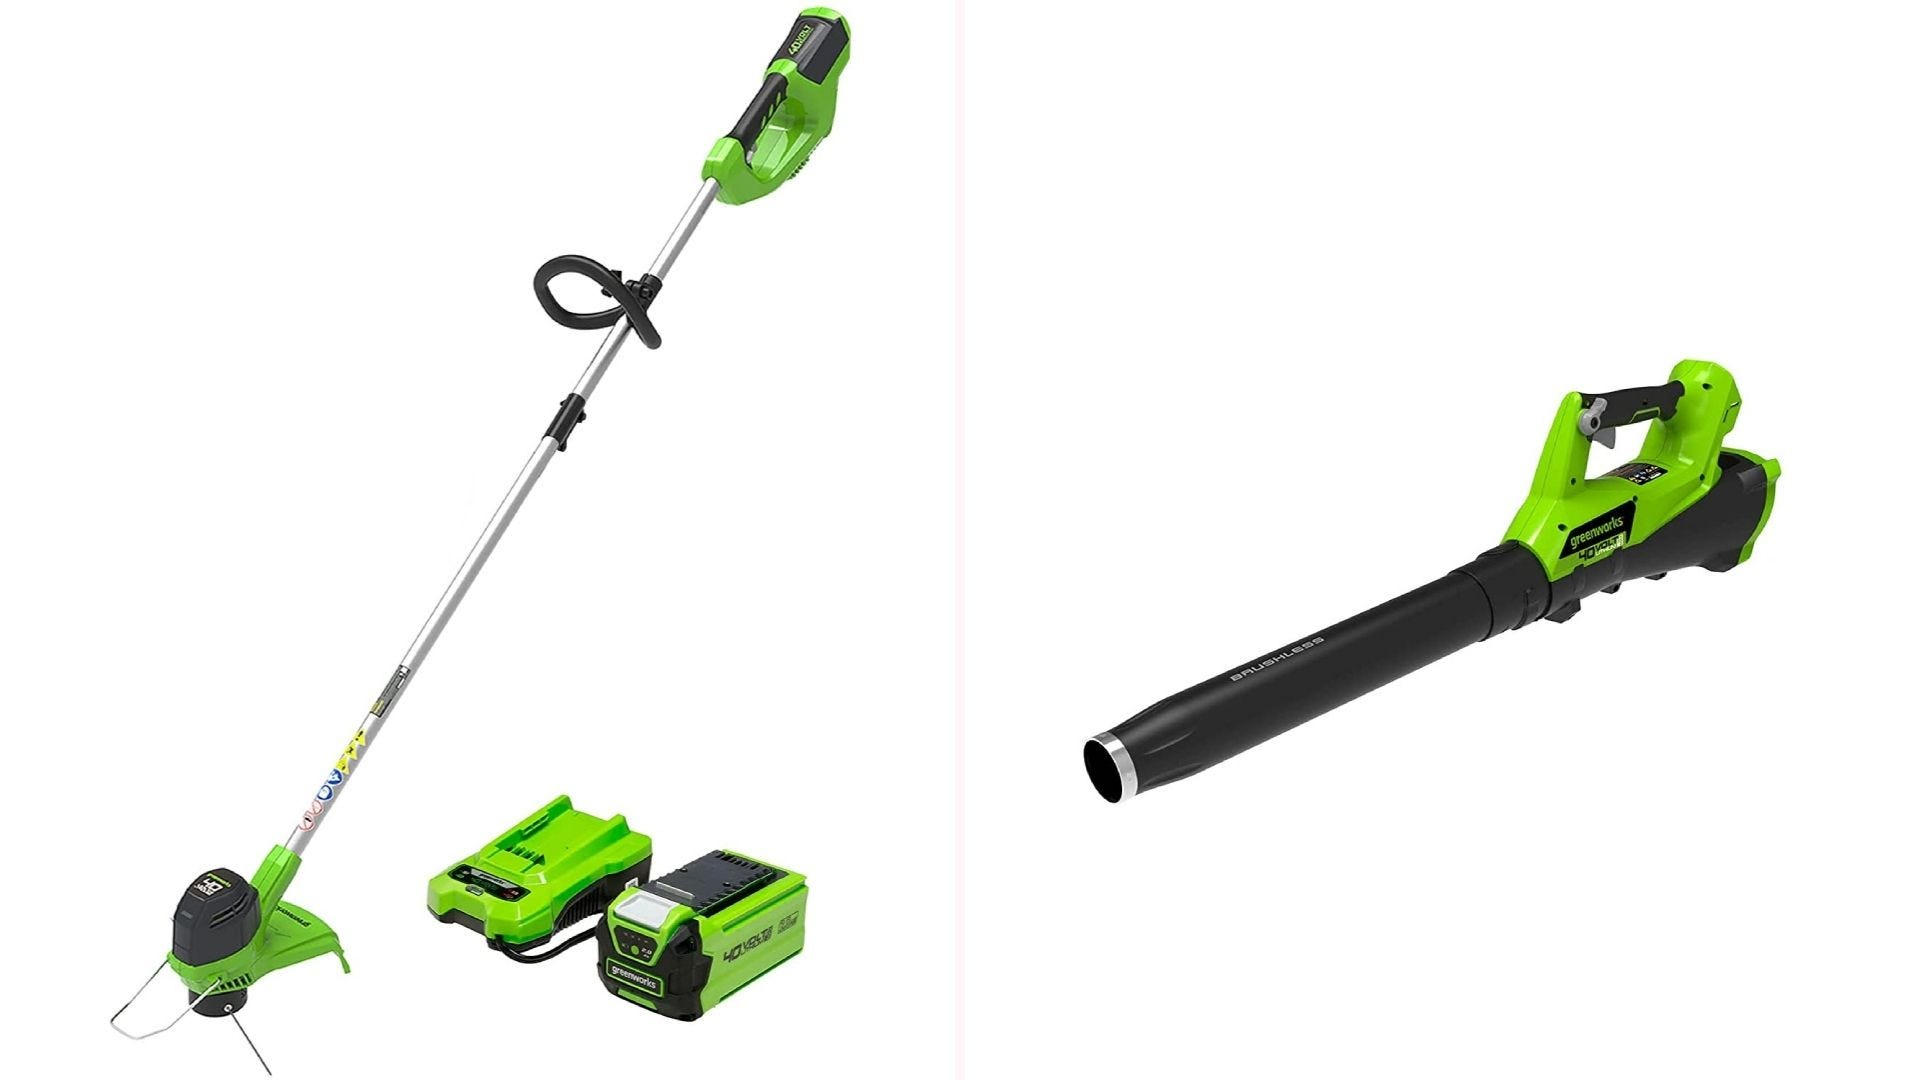 On the left is a green and black trimmer propped up next to charger and battery pack bearing the same colors. On the right is a green and black leaf blower.